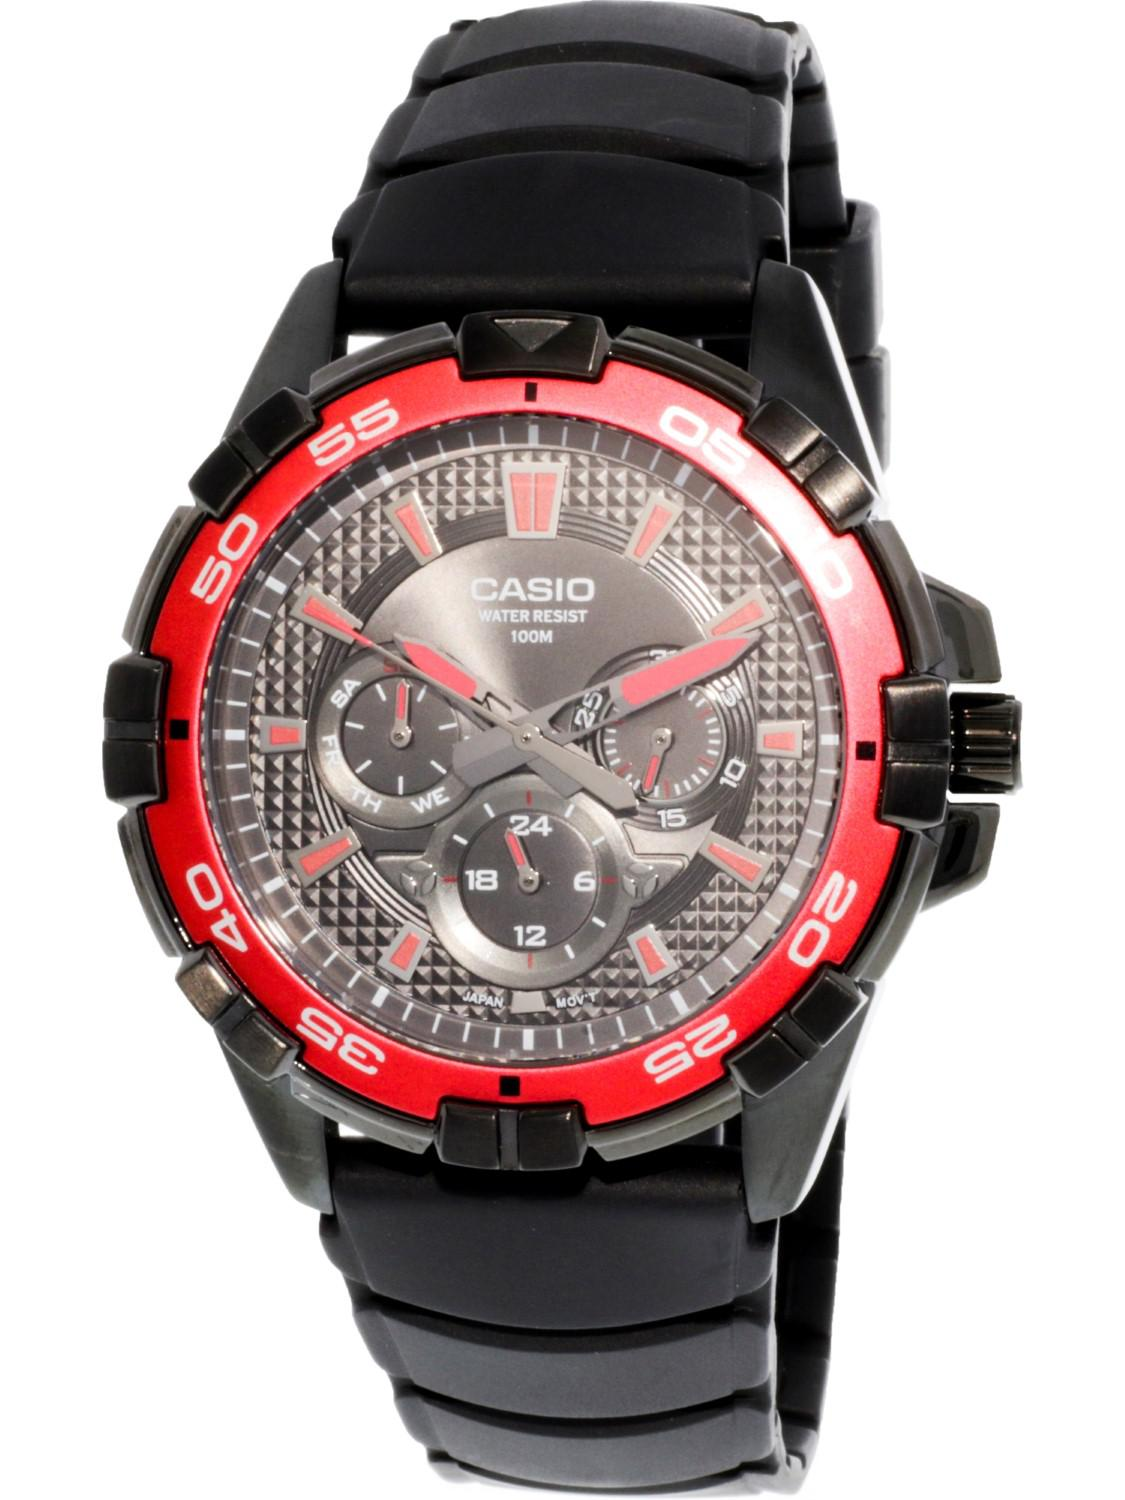 63d14043cf3c Lyst - G-Shock Round Analog Red Dial Resin Strap Watch in Black for Men